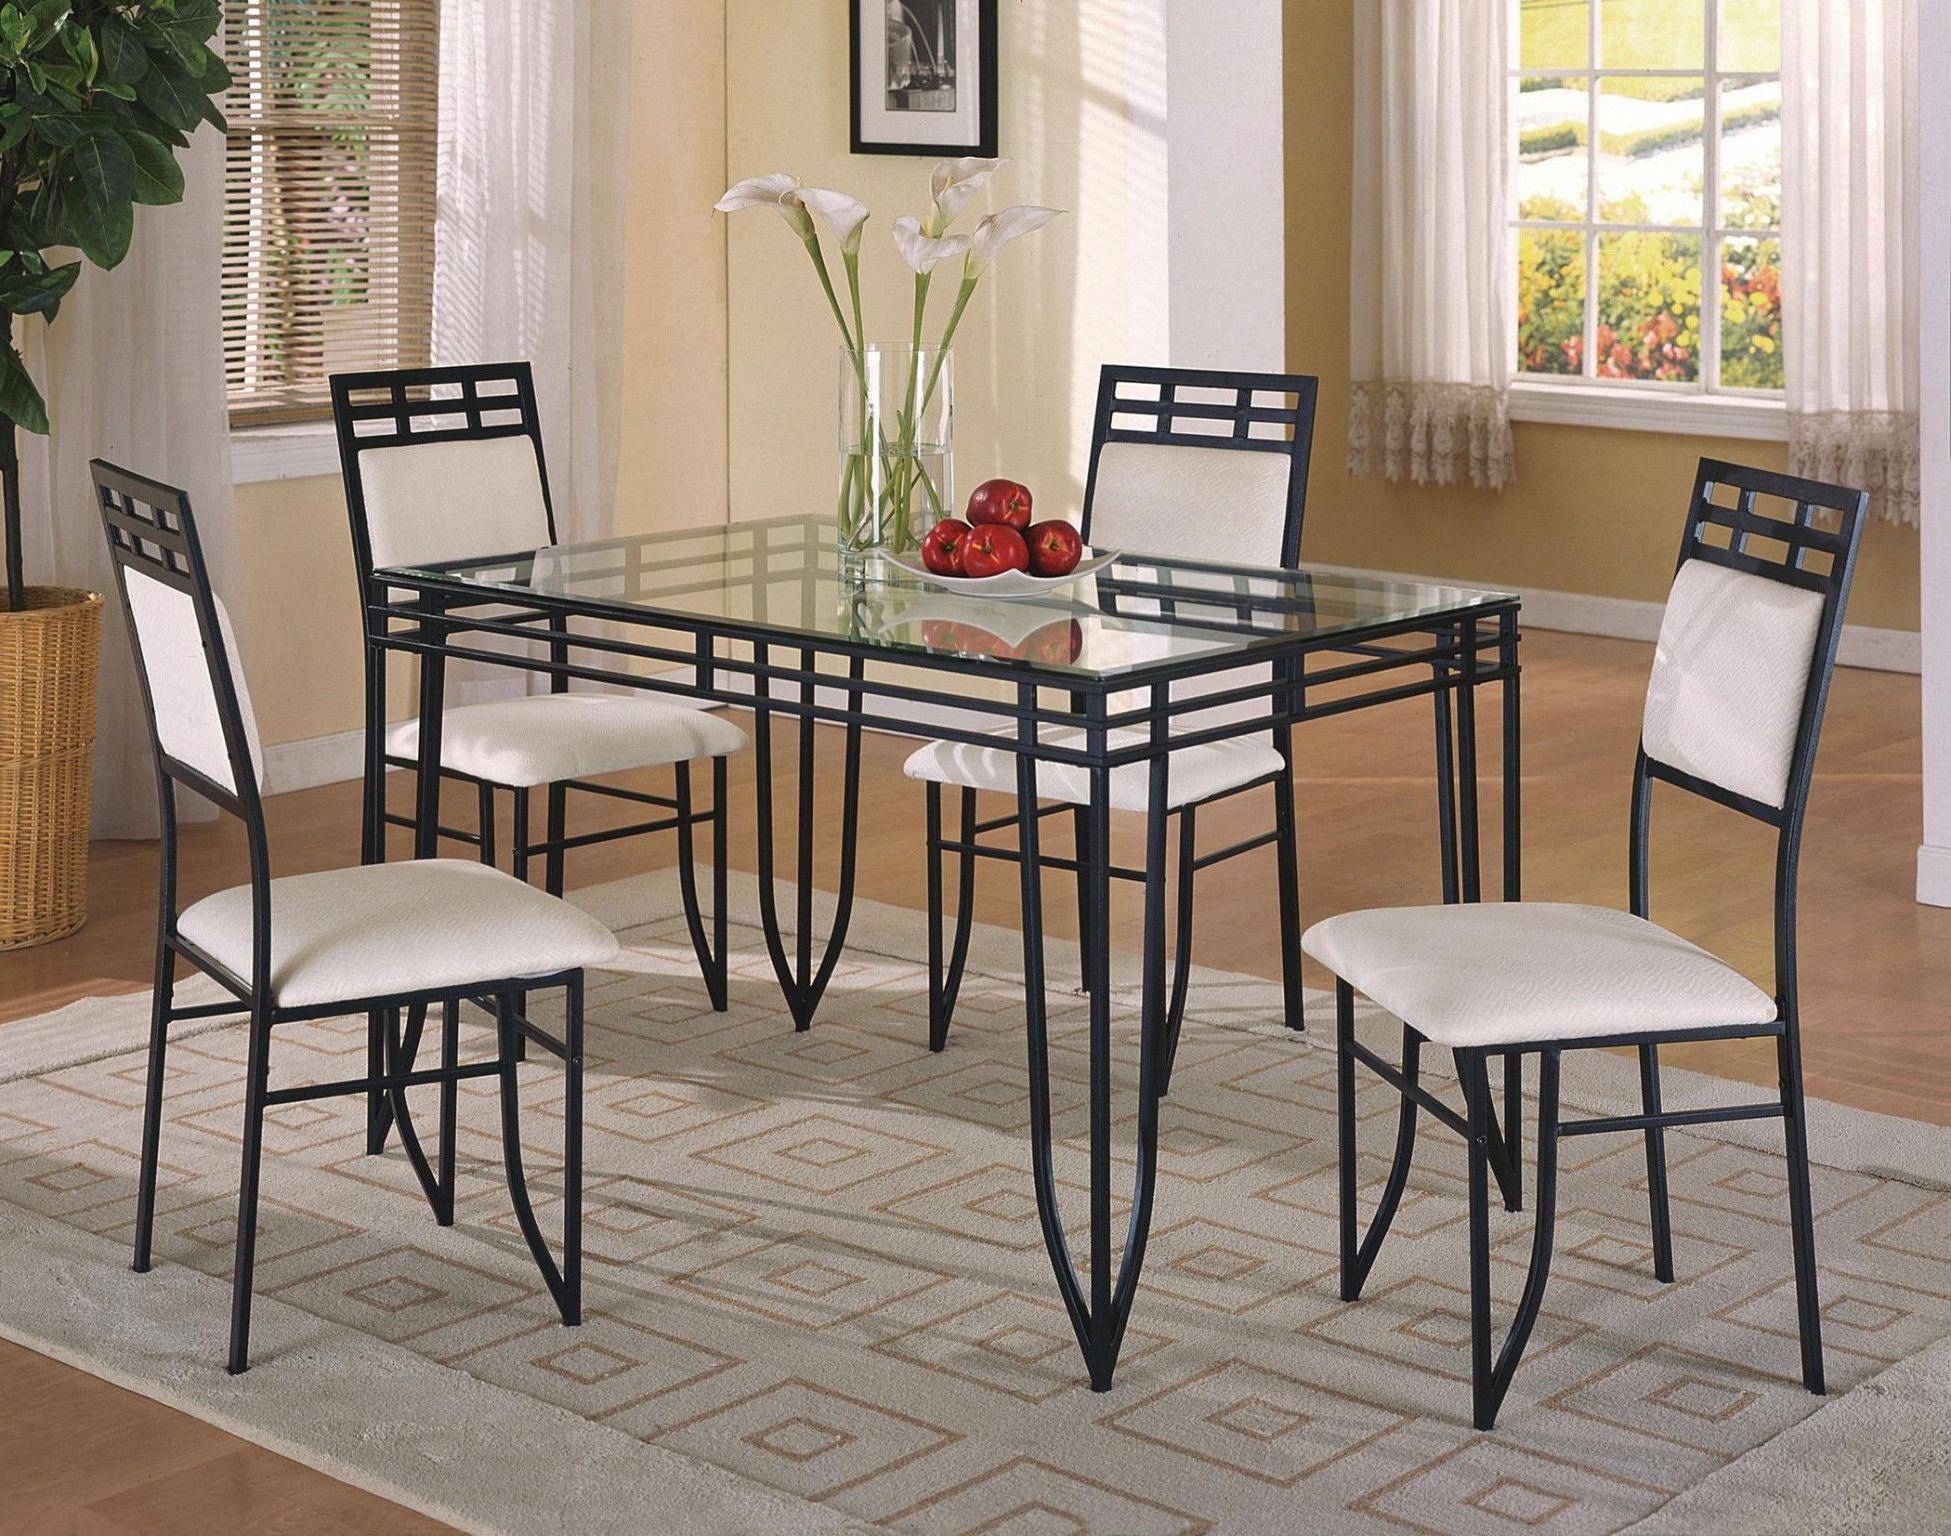 Home Design Ideas regarding Middleport 5 Piece Dining Sets